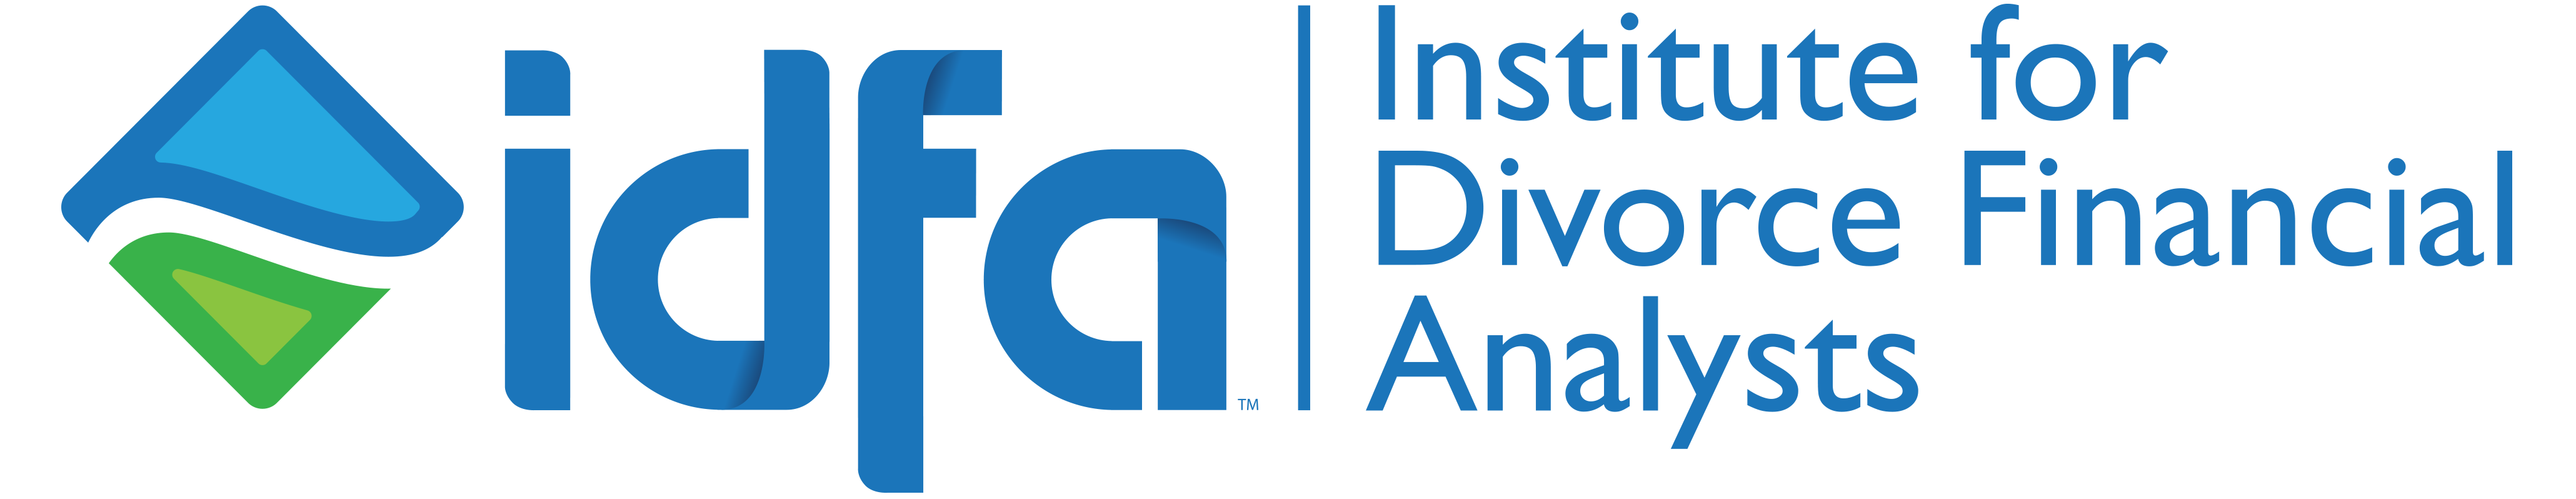 Institute for Divorce Financial Analysis